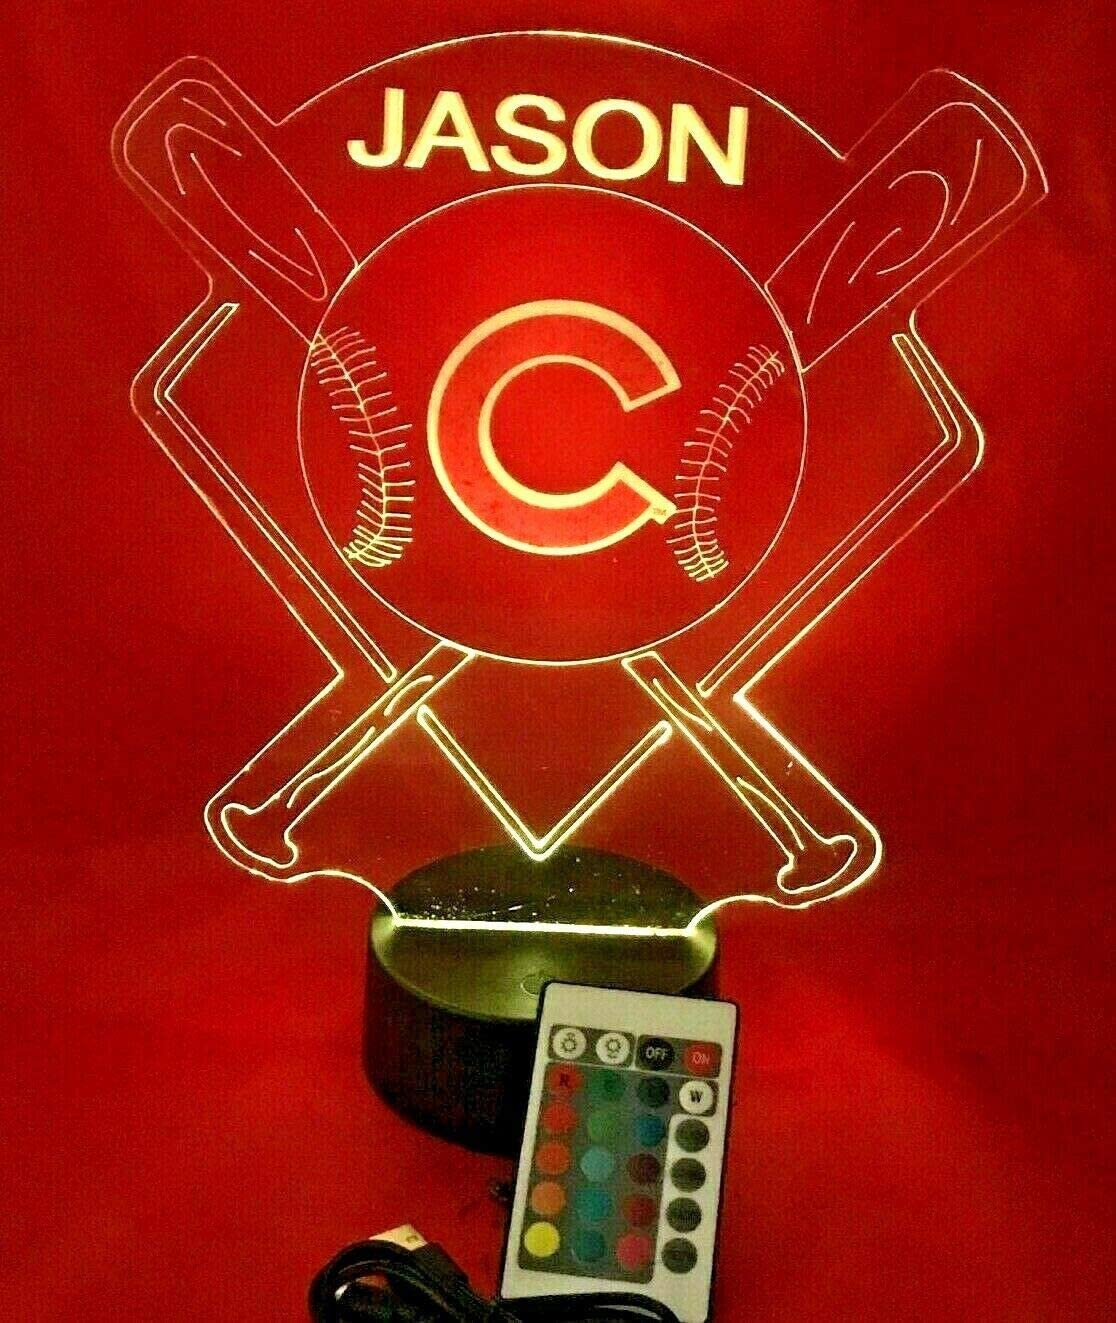 Baseball Night Light Up Lamp LED Lamp Personalized Handmade Stadium with Bats Free Personalization and Remote, Men Man Boys Girls Sports Gift, 16 Color Options, and Variations! (Cubs)